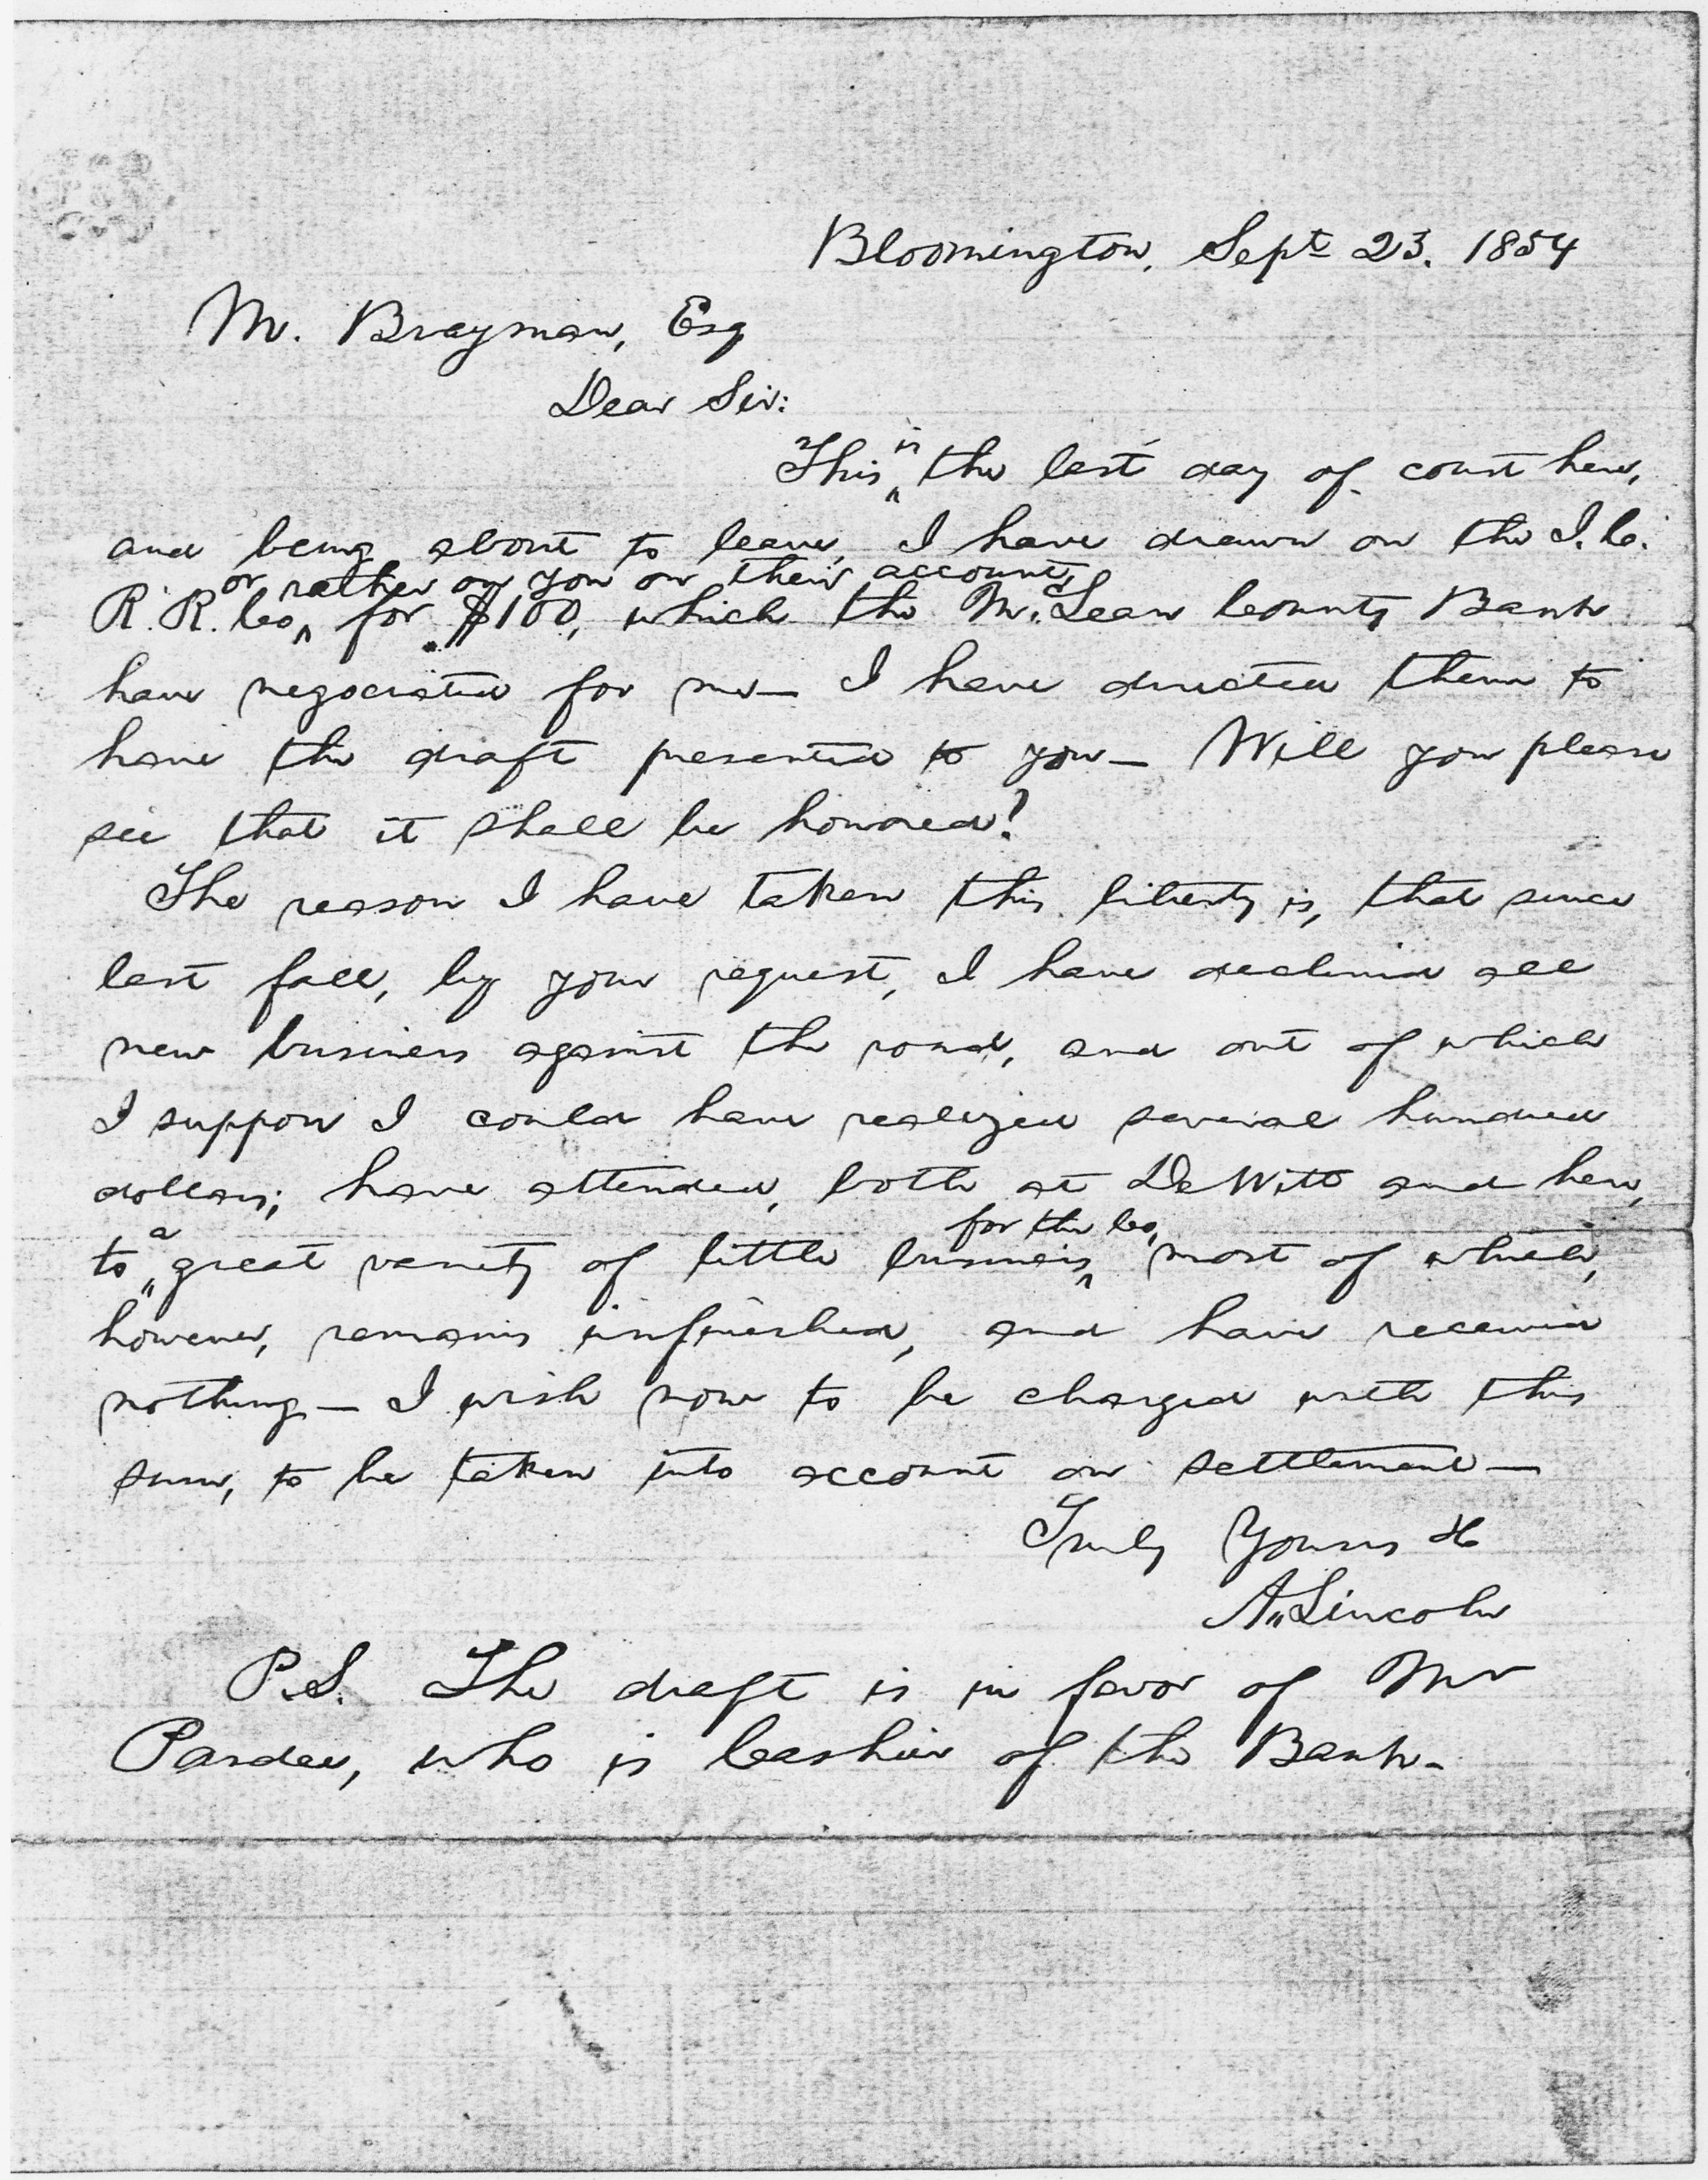 fileabraham lincoln letter to mr brayman september 23 1854 nara